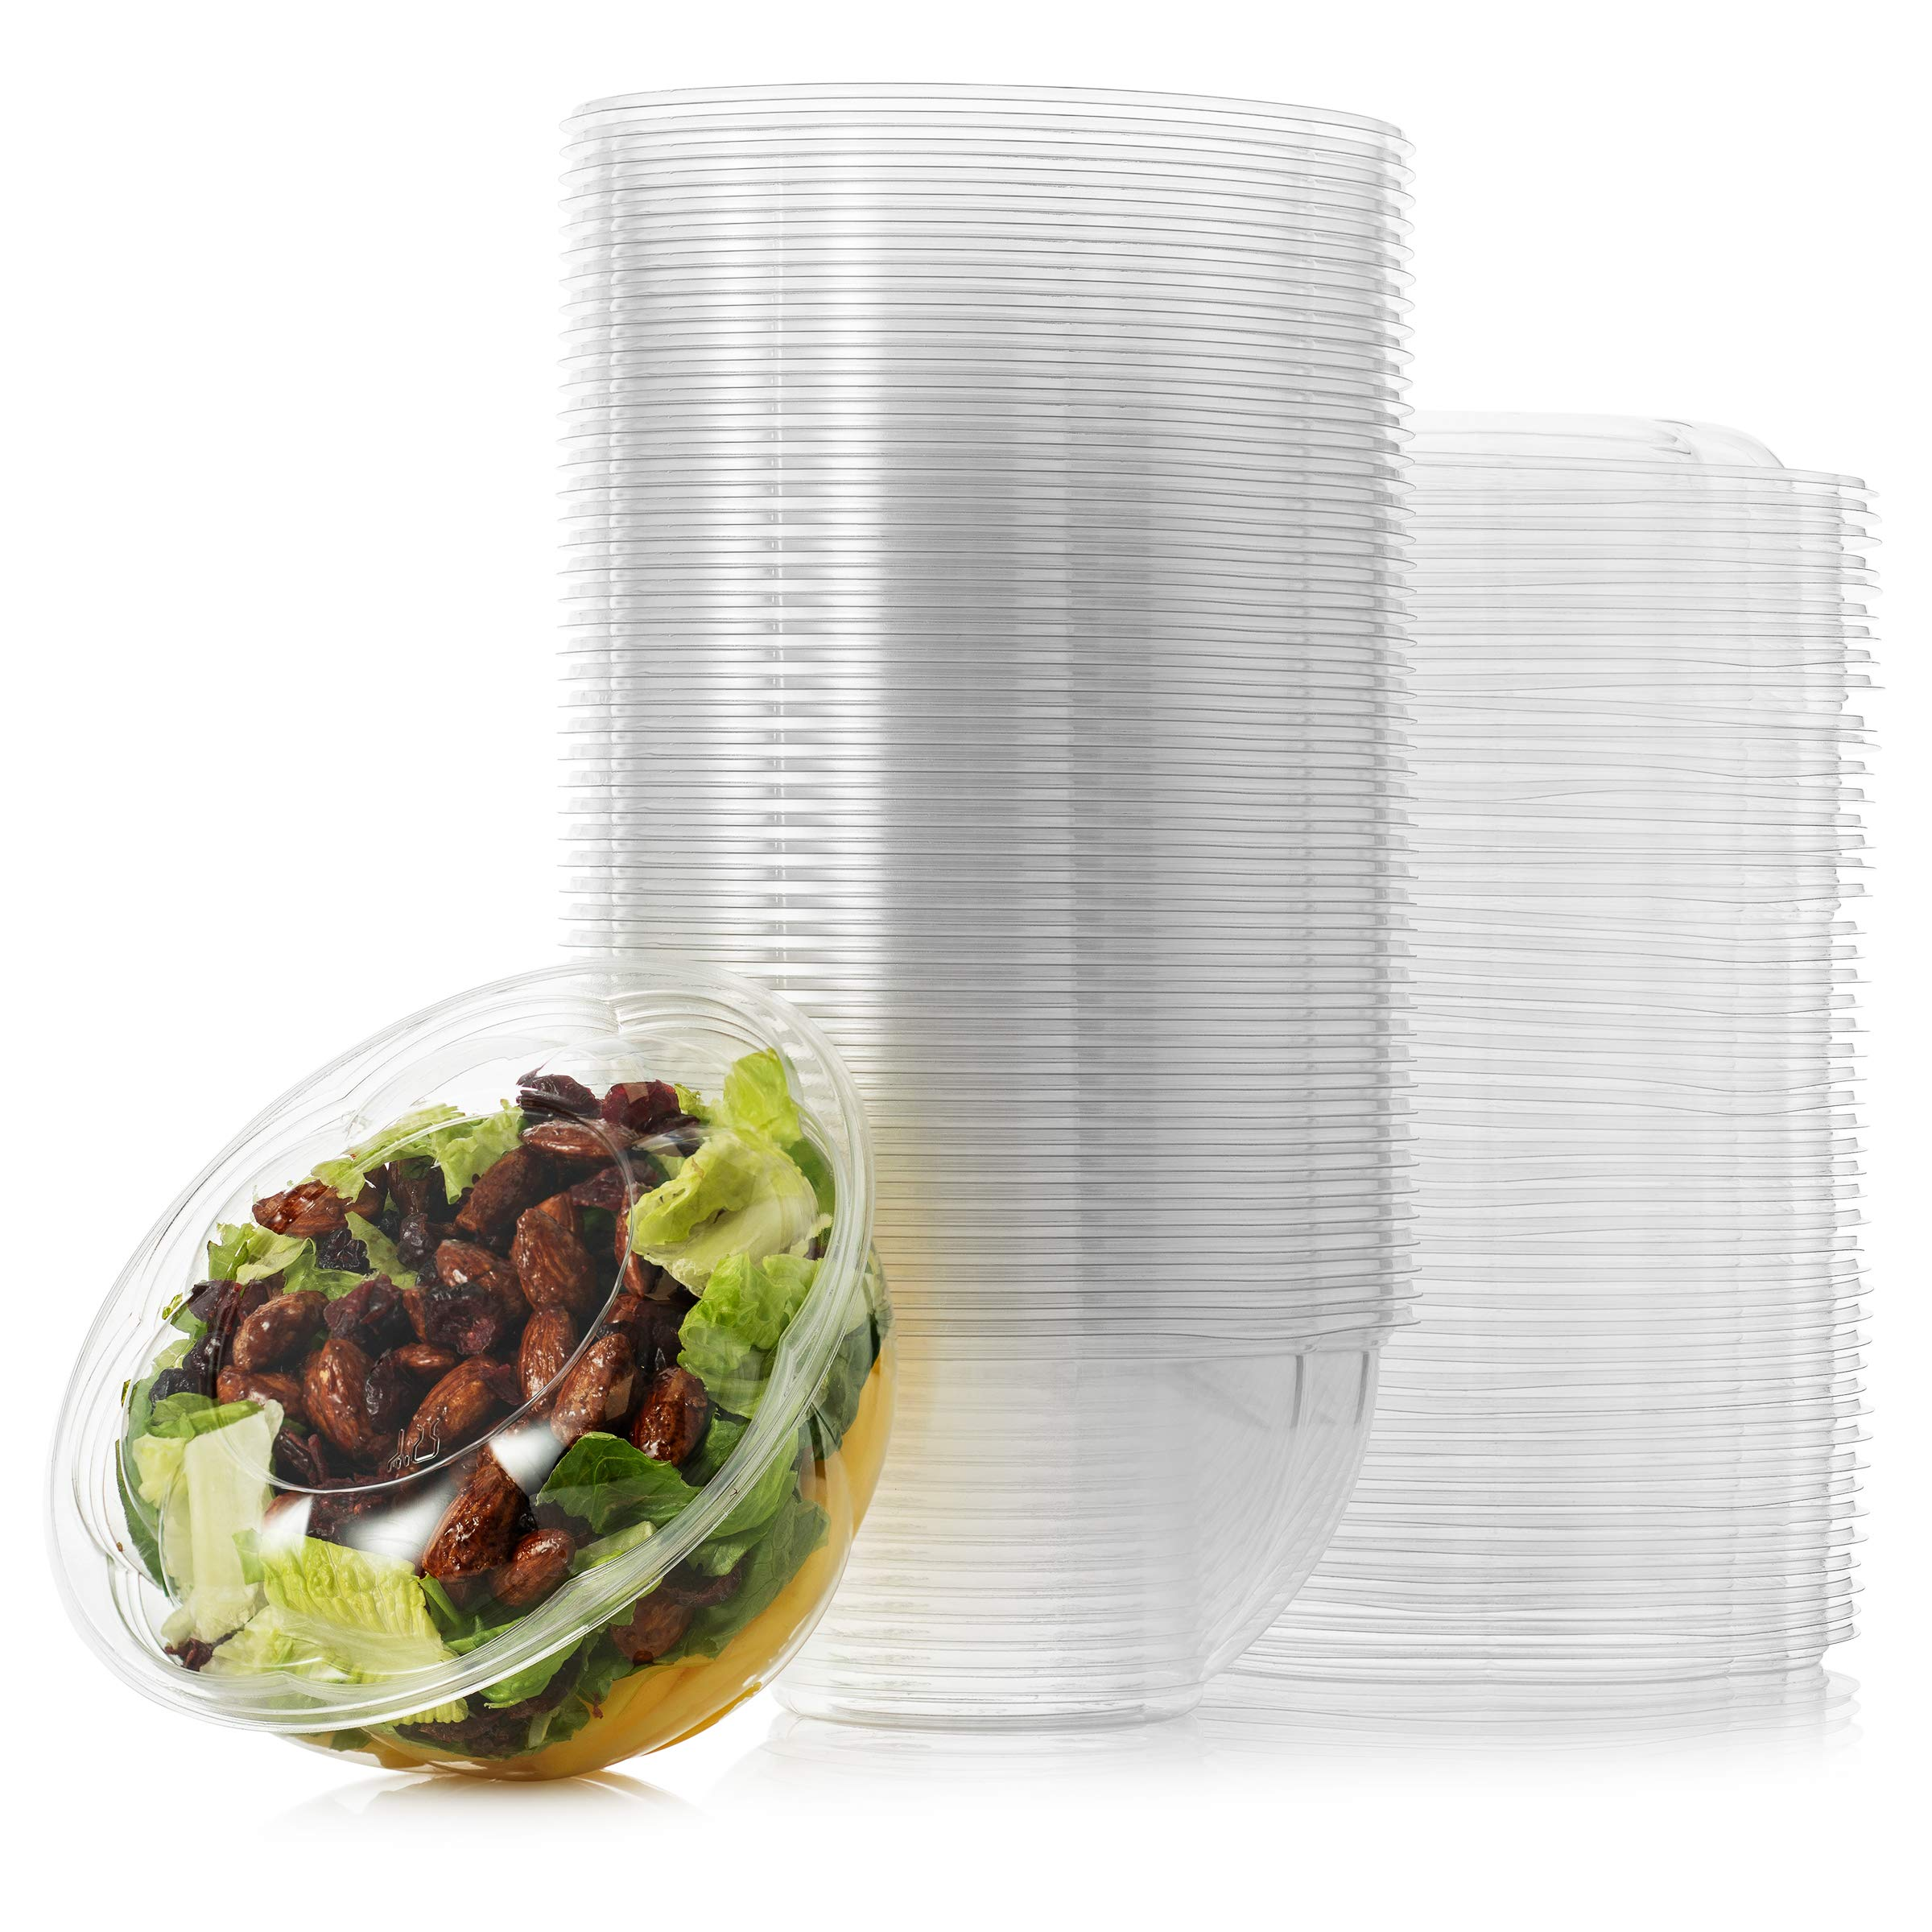 Plastic Salad Bowl by Green Direct - 24 oz Disposable Clear Mixing Bowl set with lid for chopped - iced - or fruit salad; Meal Prep - Lunch - To Go - Traveling & home use - Pack of 50